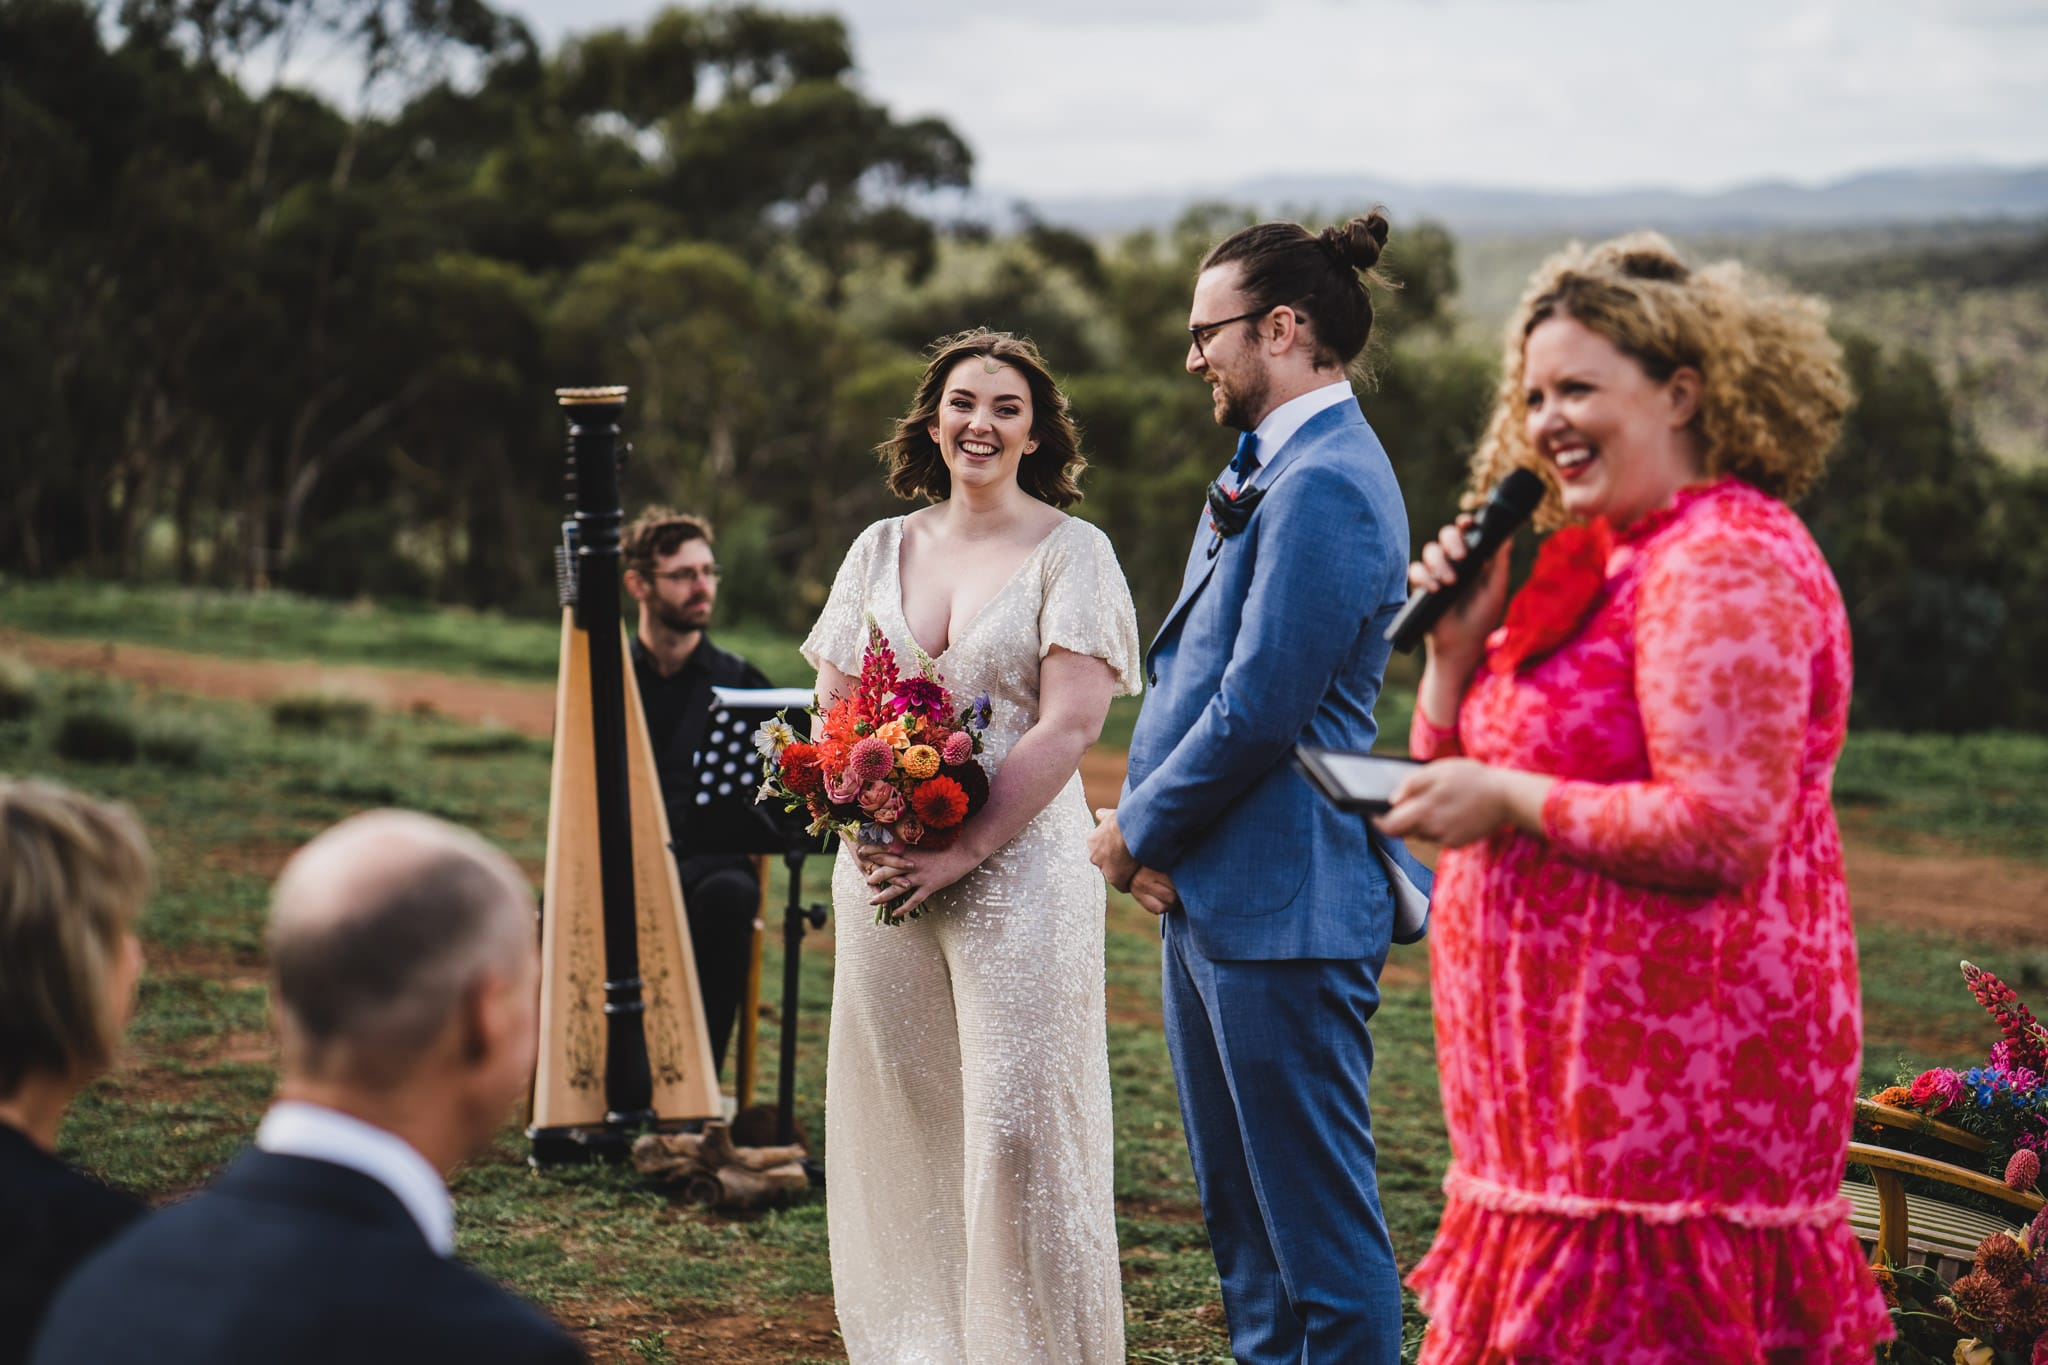 Kate & Brodie at their Camp Sunnystones wedding festival